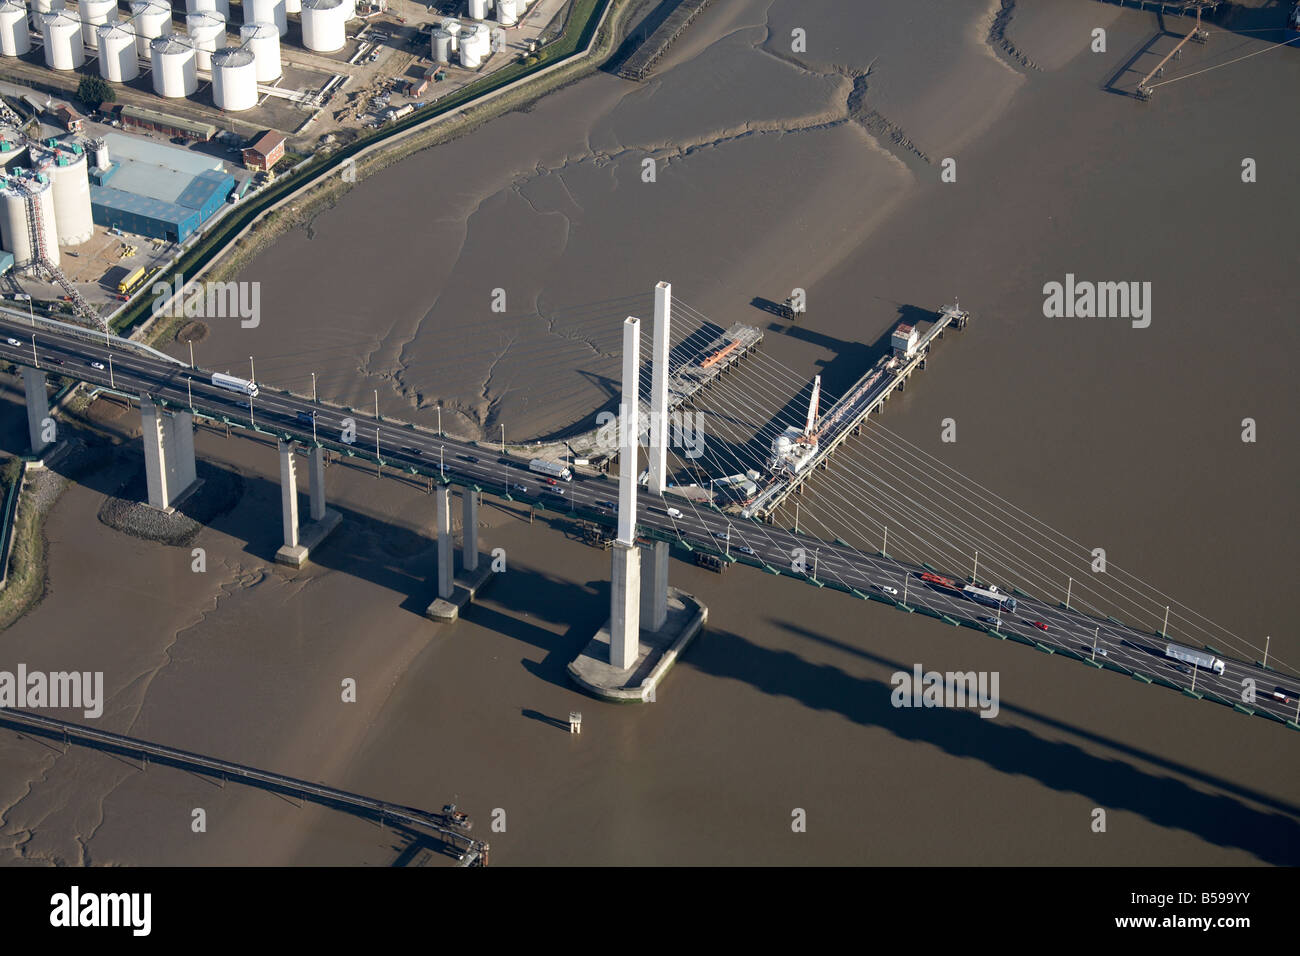 Aerial view south east of Queen Elizabeth II Bridge jetties River Thames oil storage depot West Thurrock Grays London - Stock Image